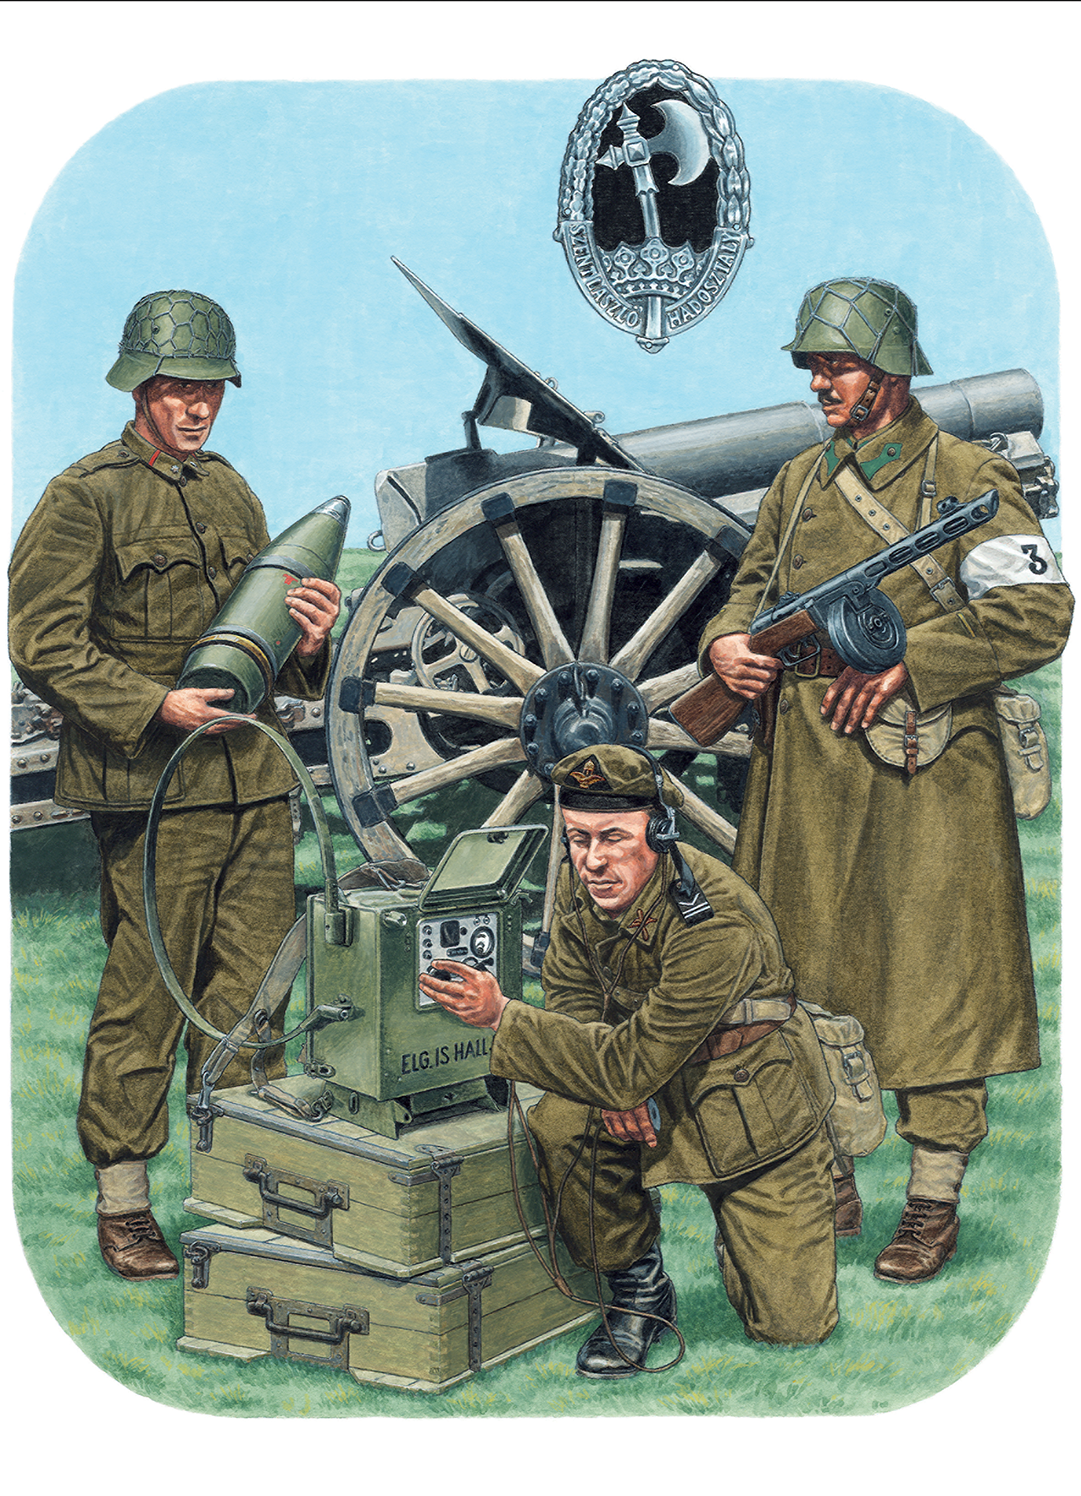 cce510b58 Blog - Bolt Action: Campaign: Fortress Budapest - Painting the Royal ...